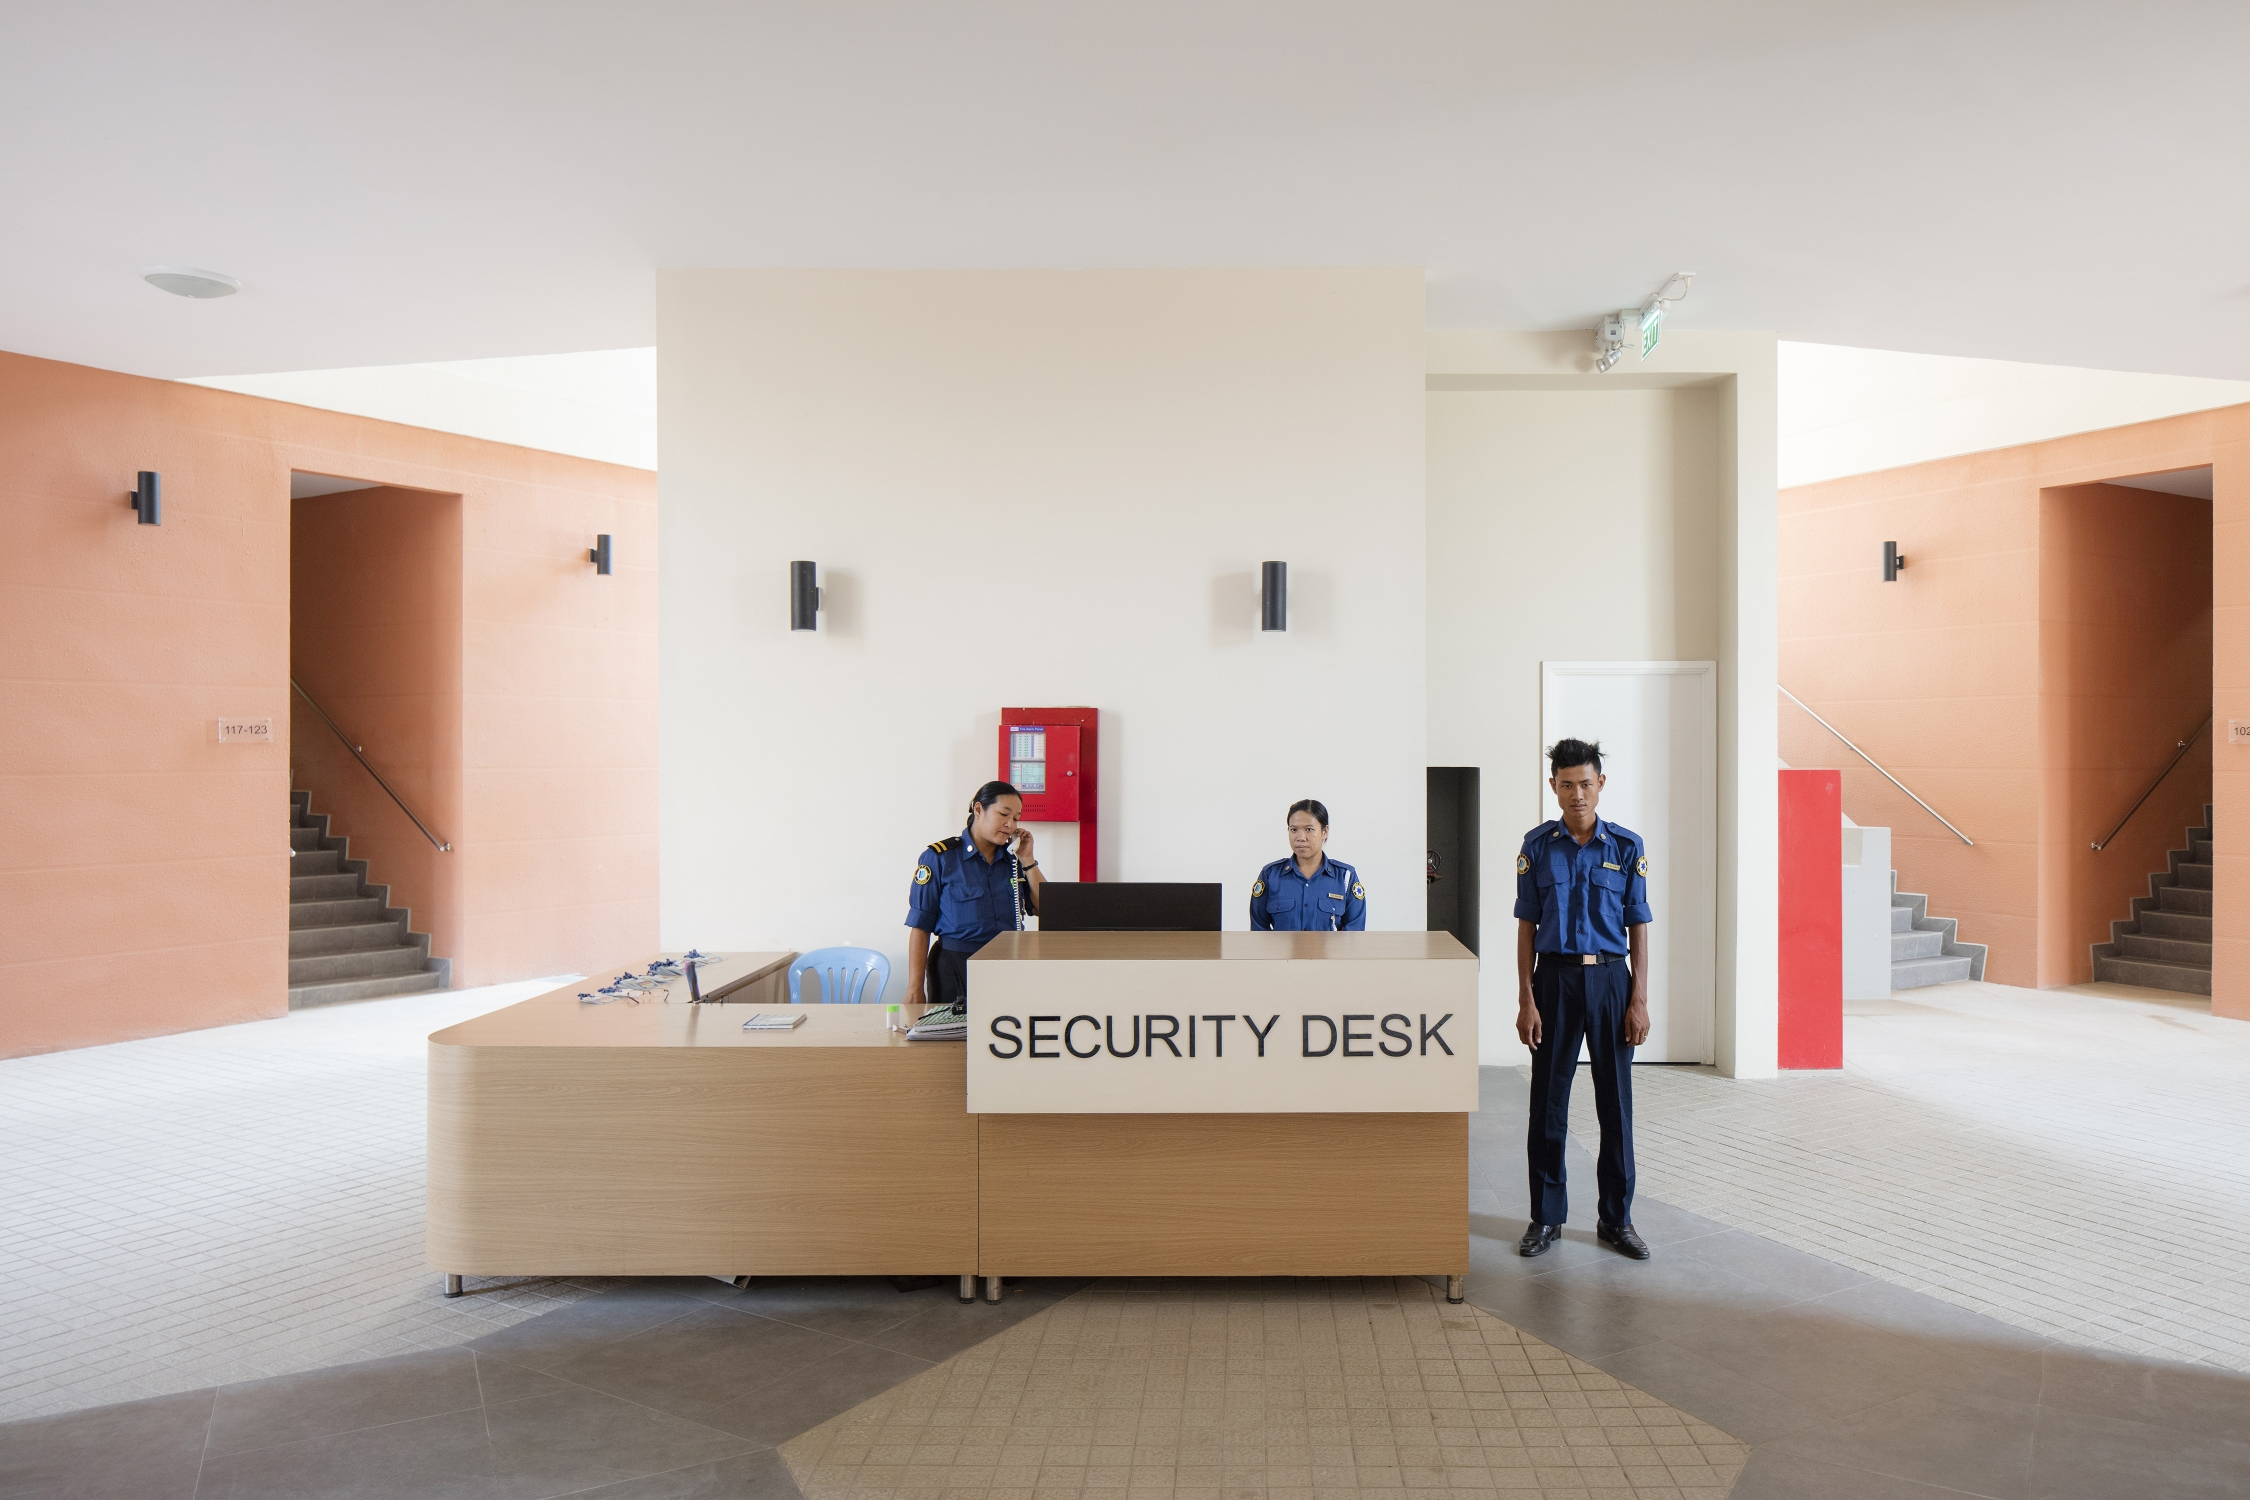 The security desk at the Star City residential development on the outskirts of Yangon. Photograph by David Levene.